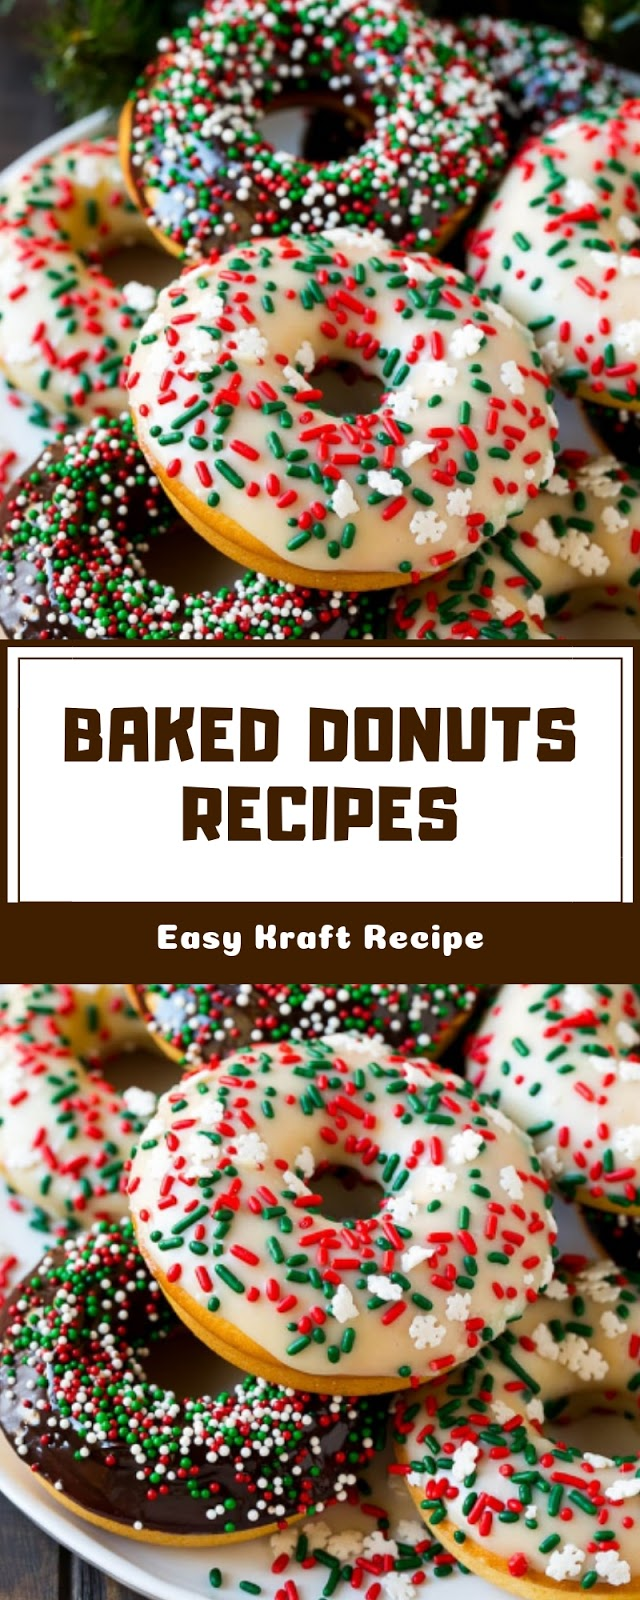 BAKED DONUTS RECIPES